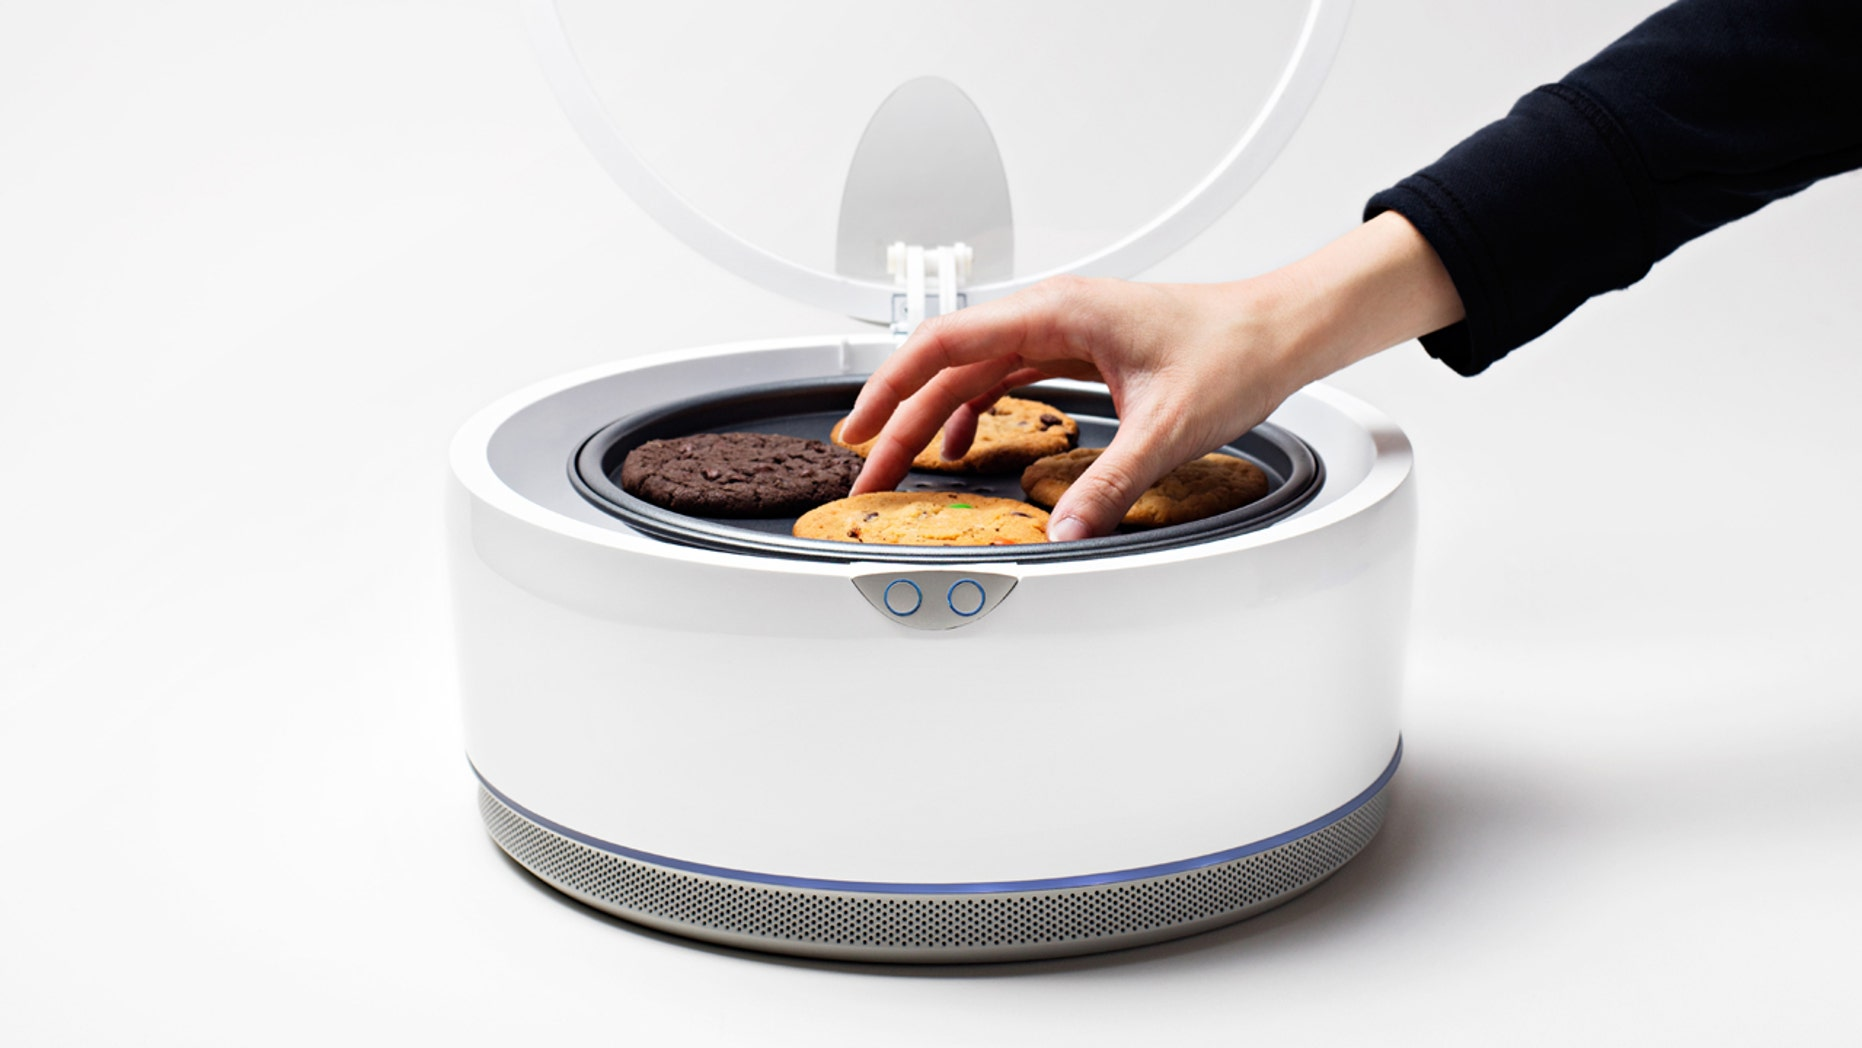 This countertop oven will bake gourmet cookies in under 10 minutes.